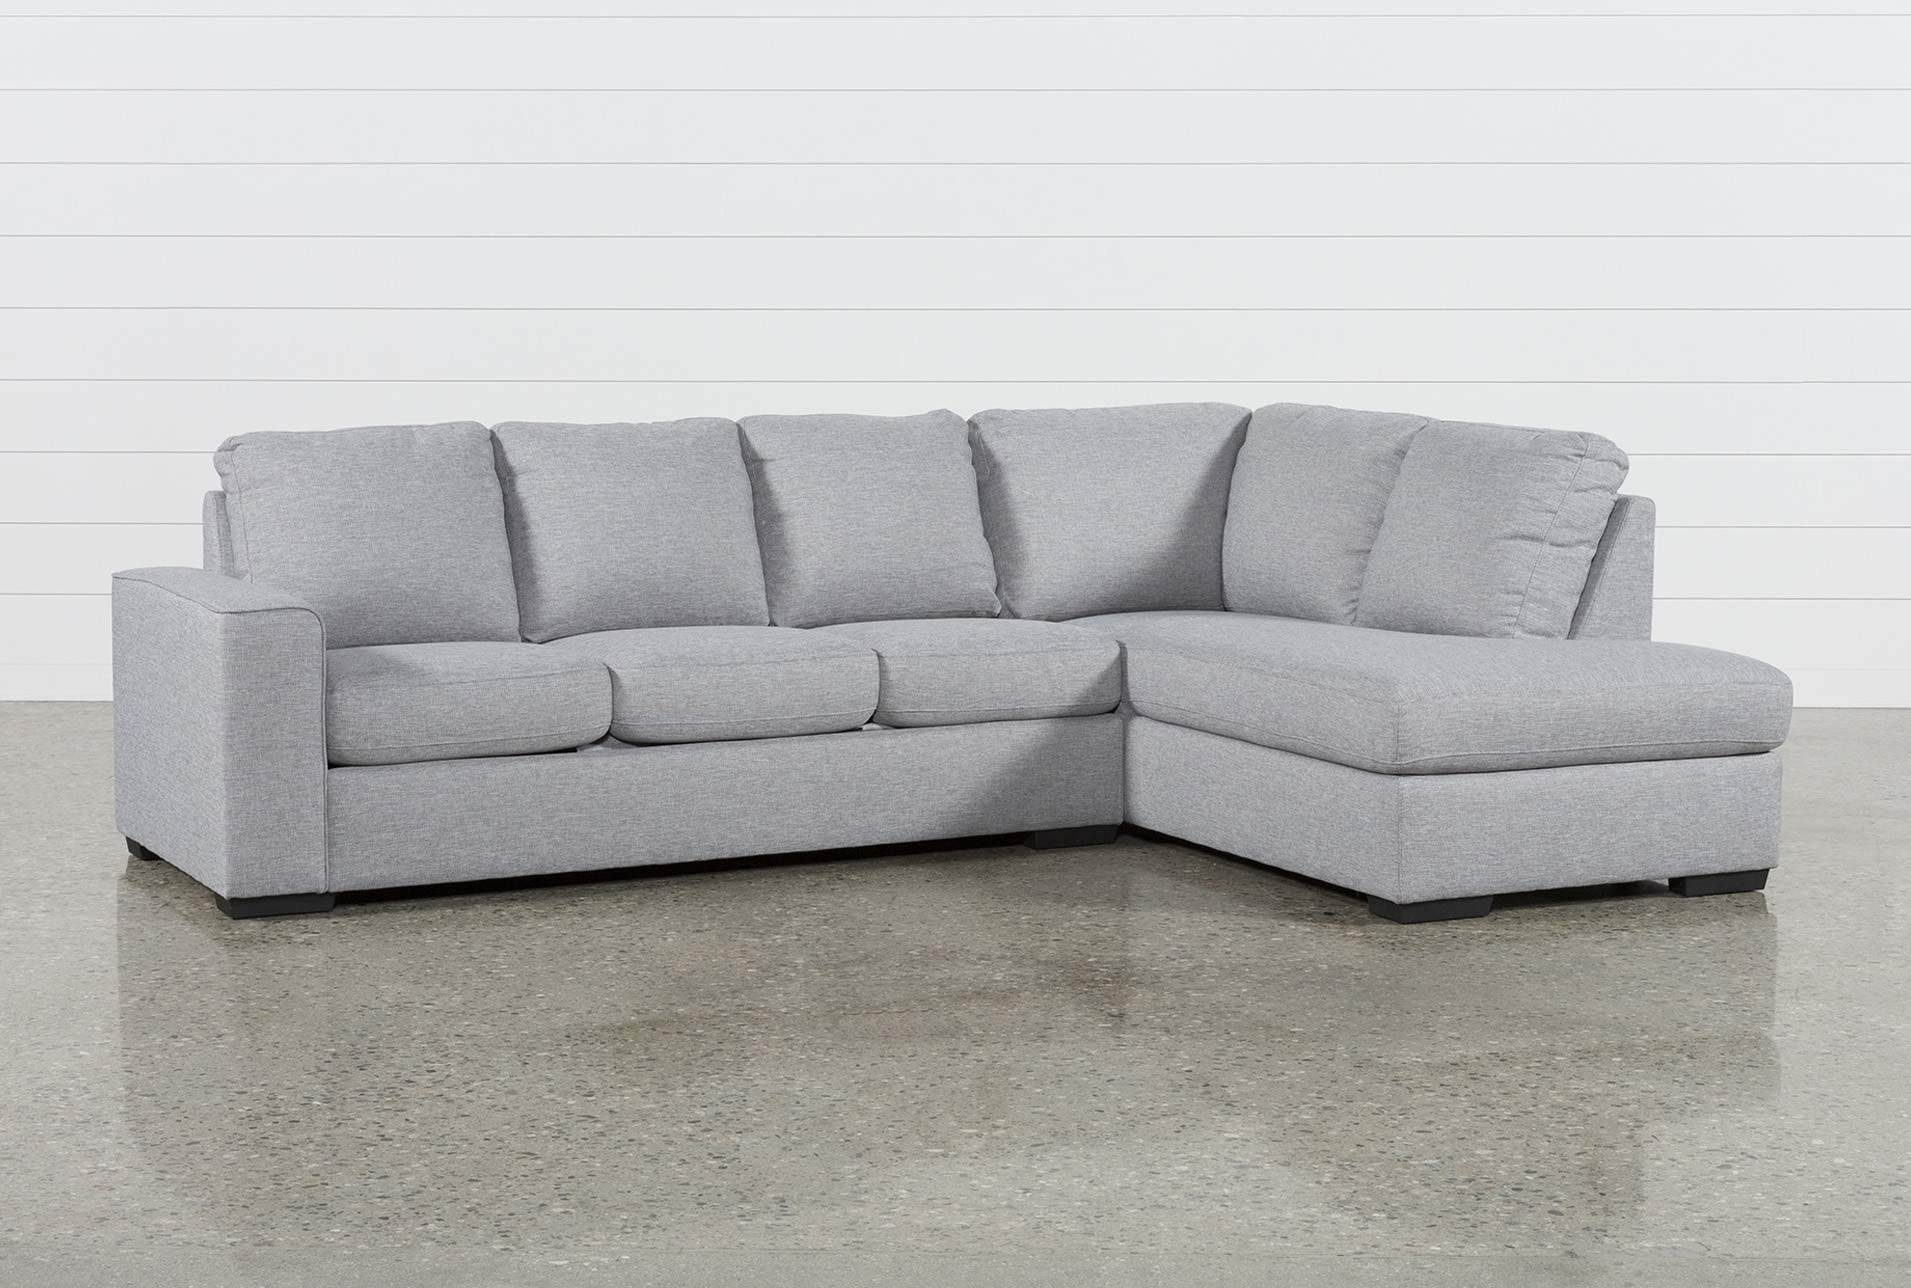 Lucy Grey 2 Piece Sectional W/raf Chaise | Products | Pinterest | Gray Within Lucy Dark Grey 2 Piece Sleeper Sectionals With Laf Chaise (View 3 of 25)